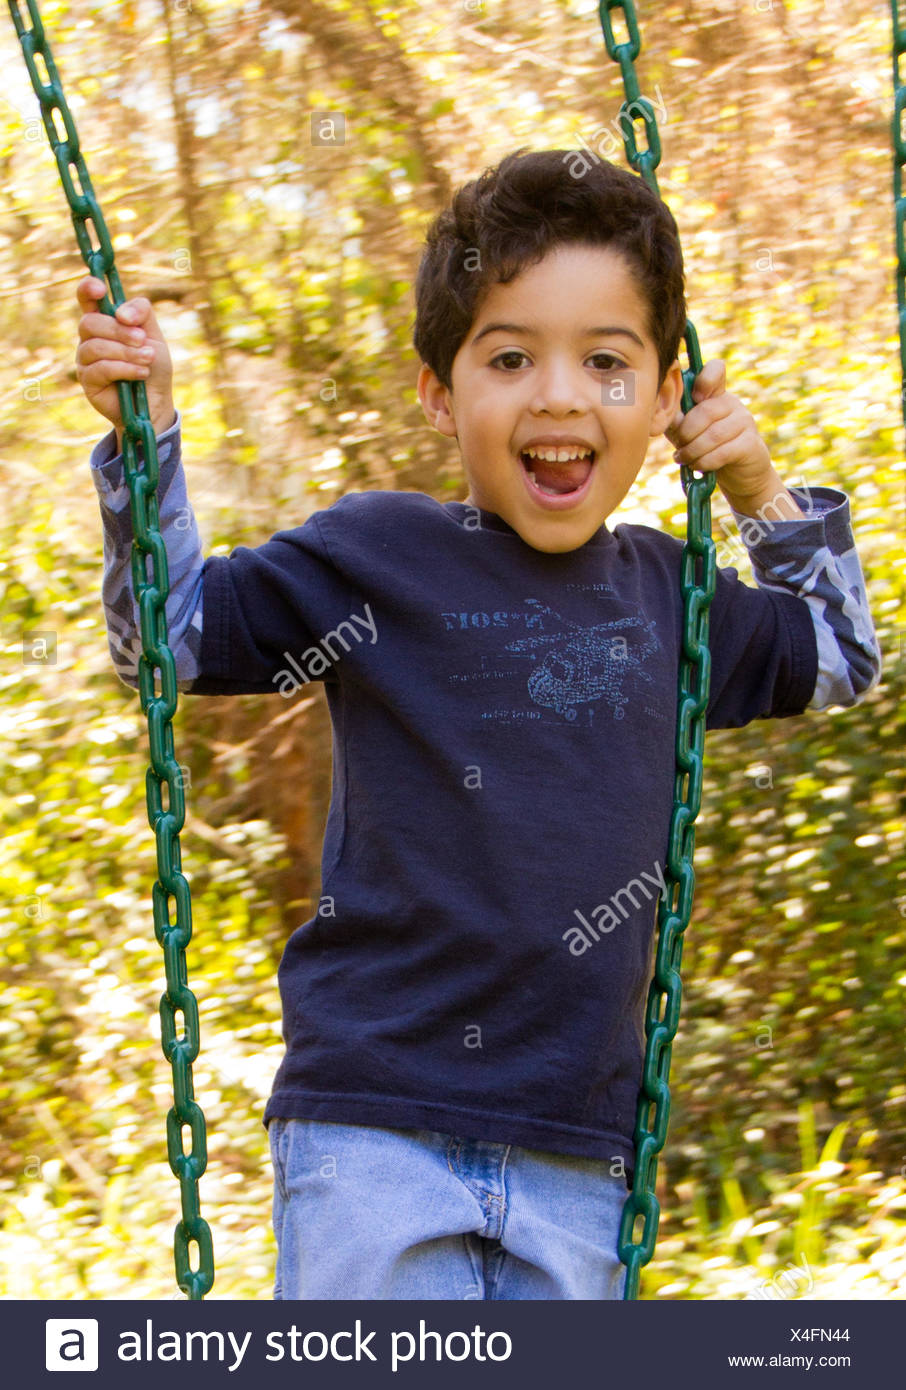 Smiling boy standing on a swing - Stock Image